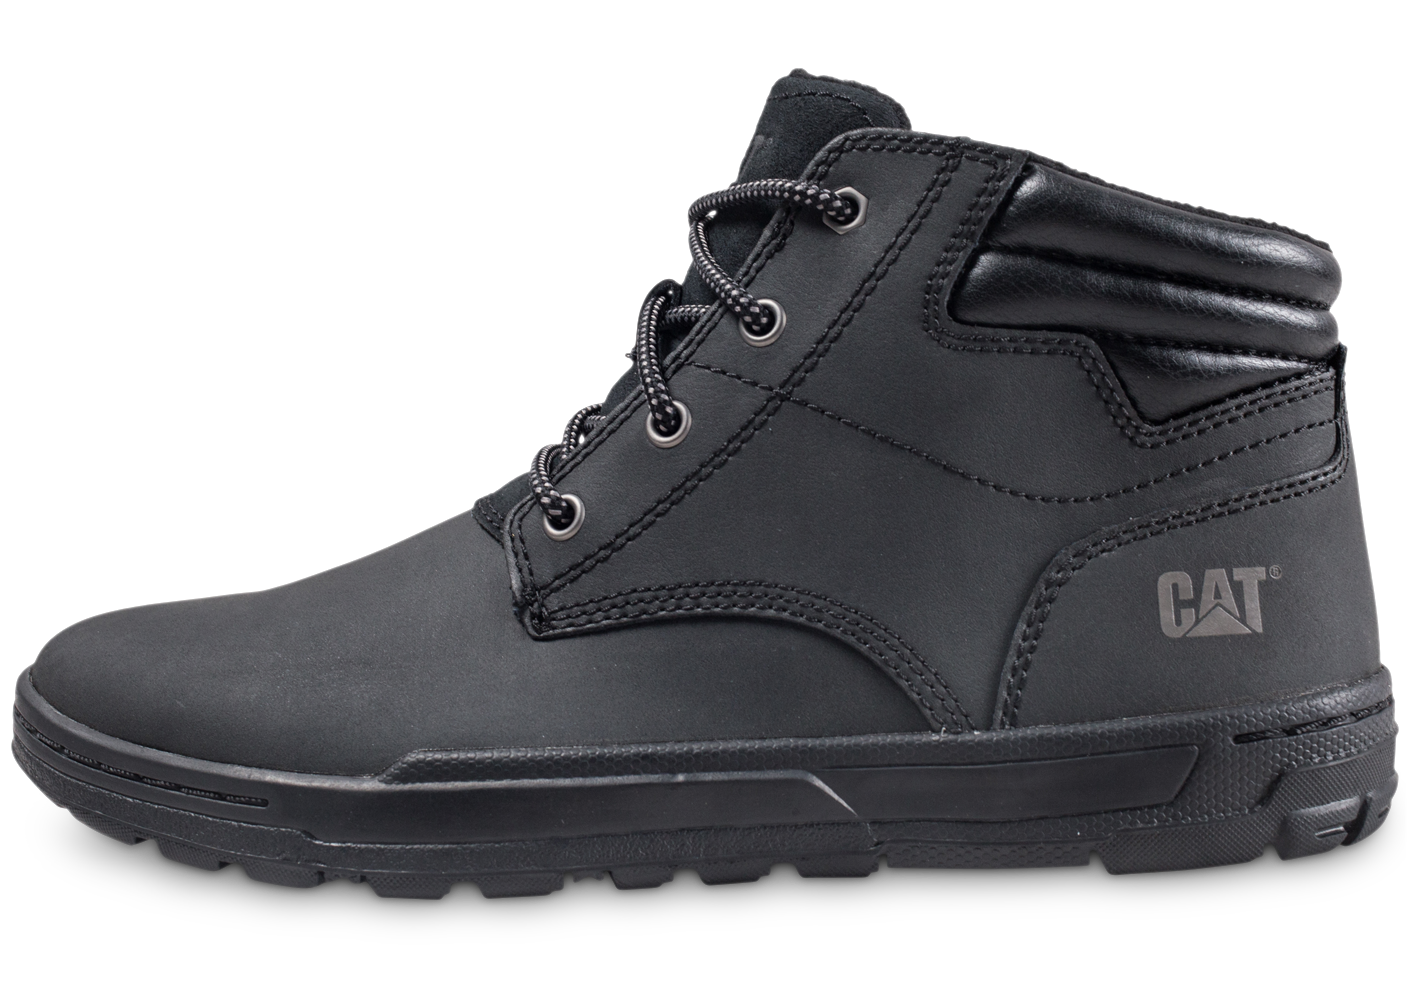 Caterpillar Homme Creedence Noire Boots